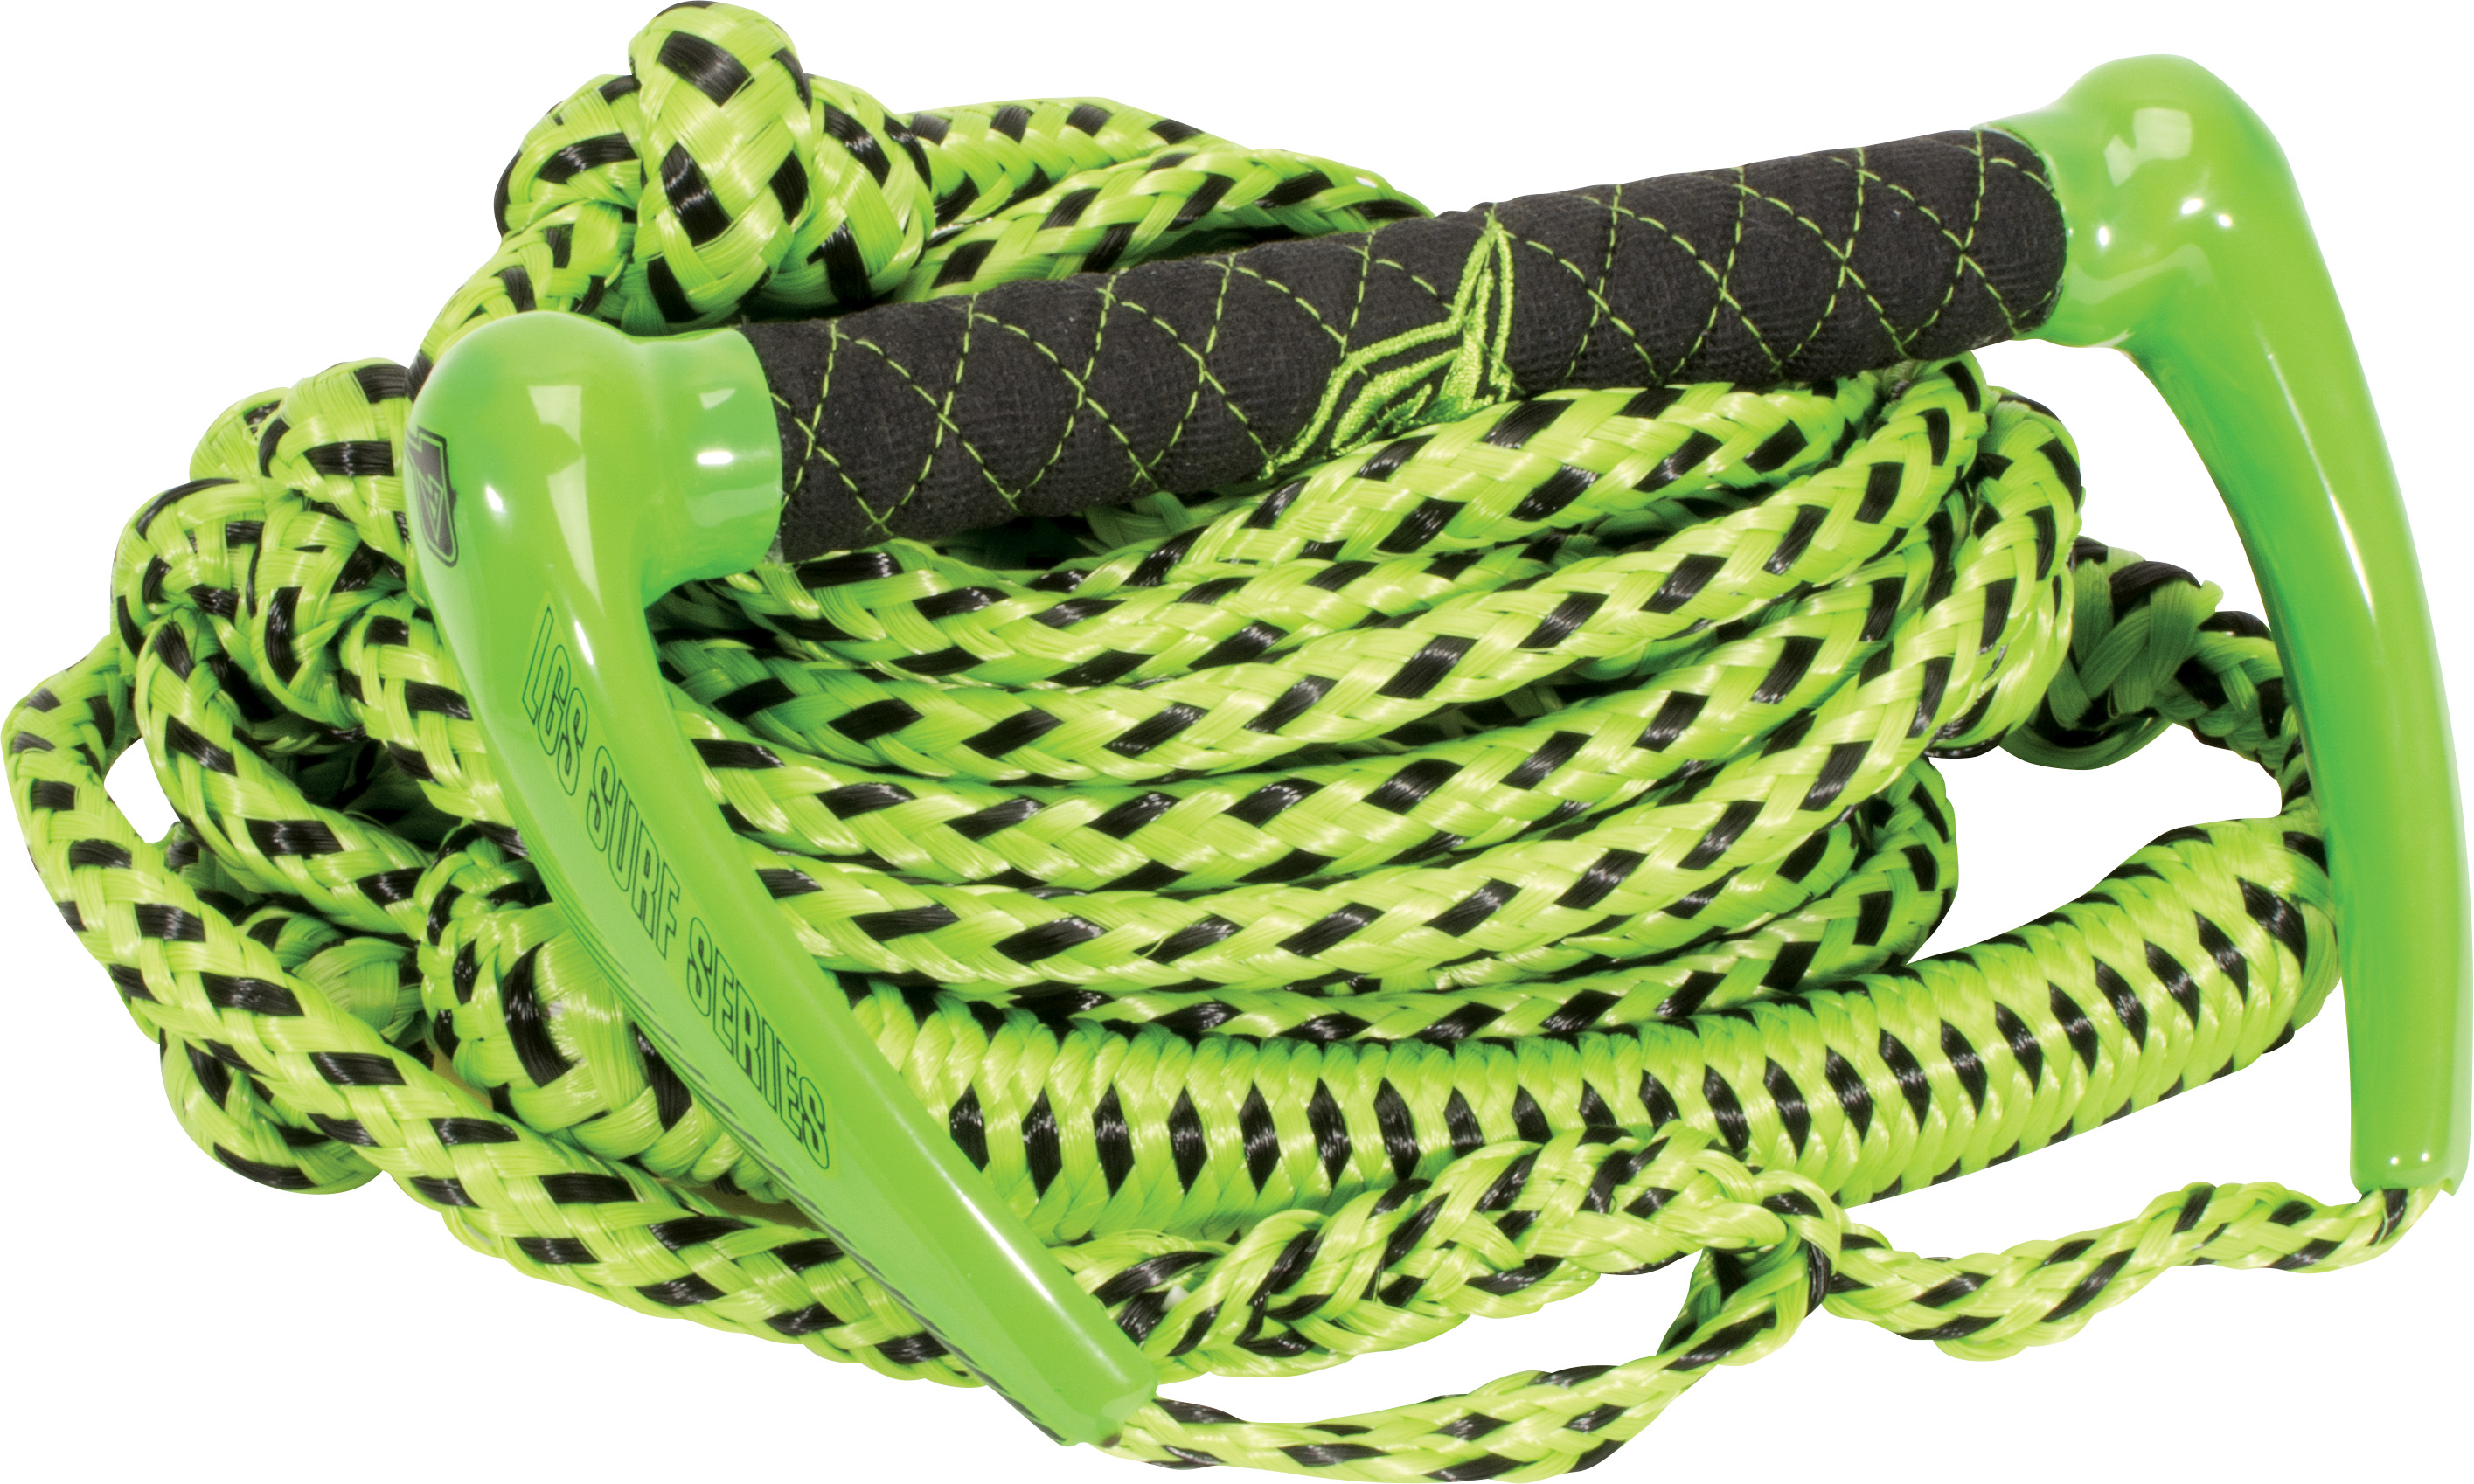 25' LGS BUNGEE SURF ROPE W/HANDLE PACKAGE - GREEN CONNELLY 2018